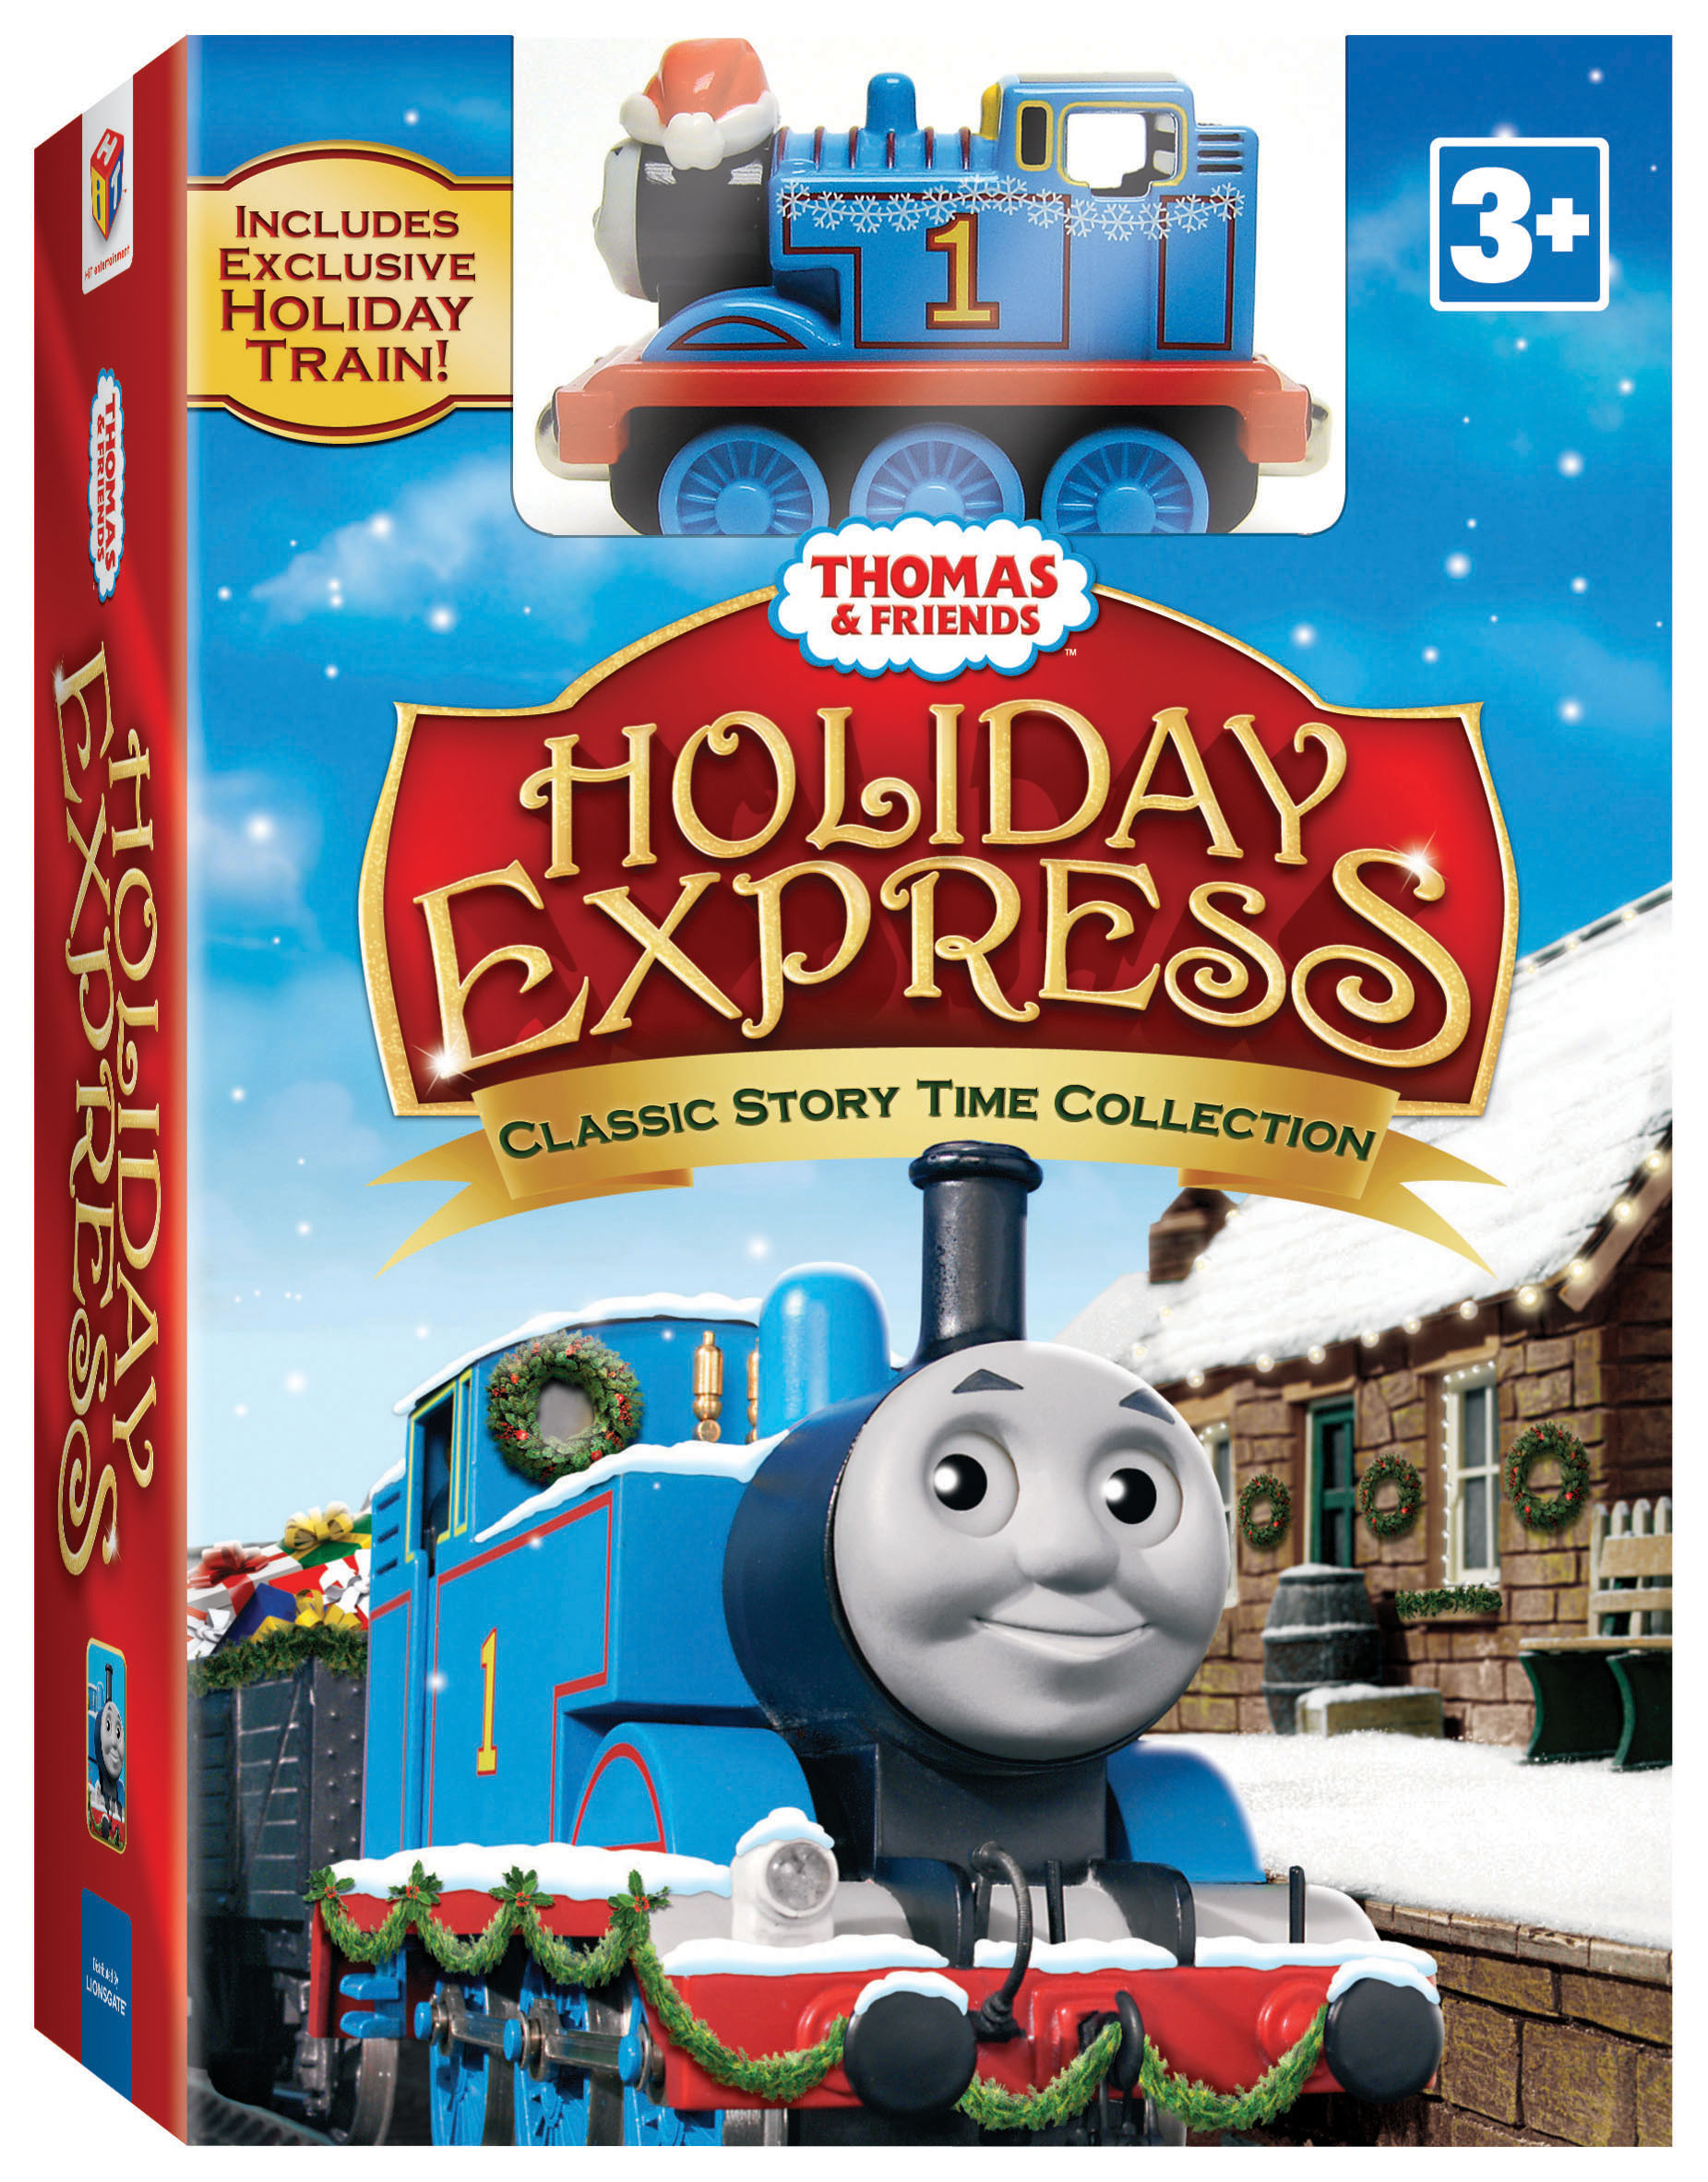 Thomas & Friends: Holiday Express {Review & Giveaway}